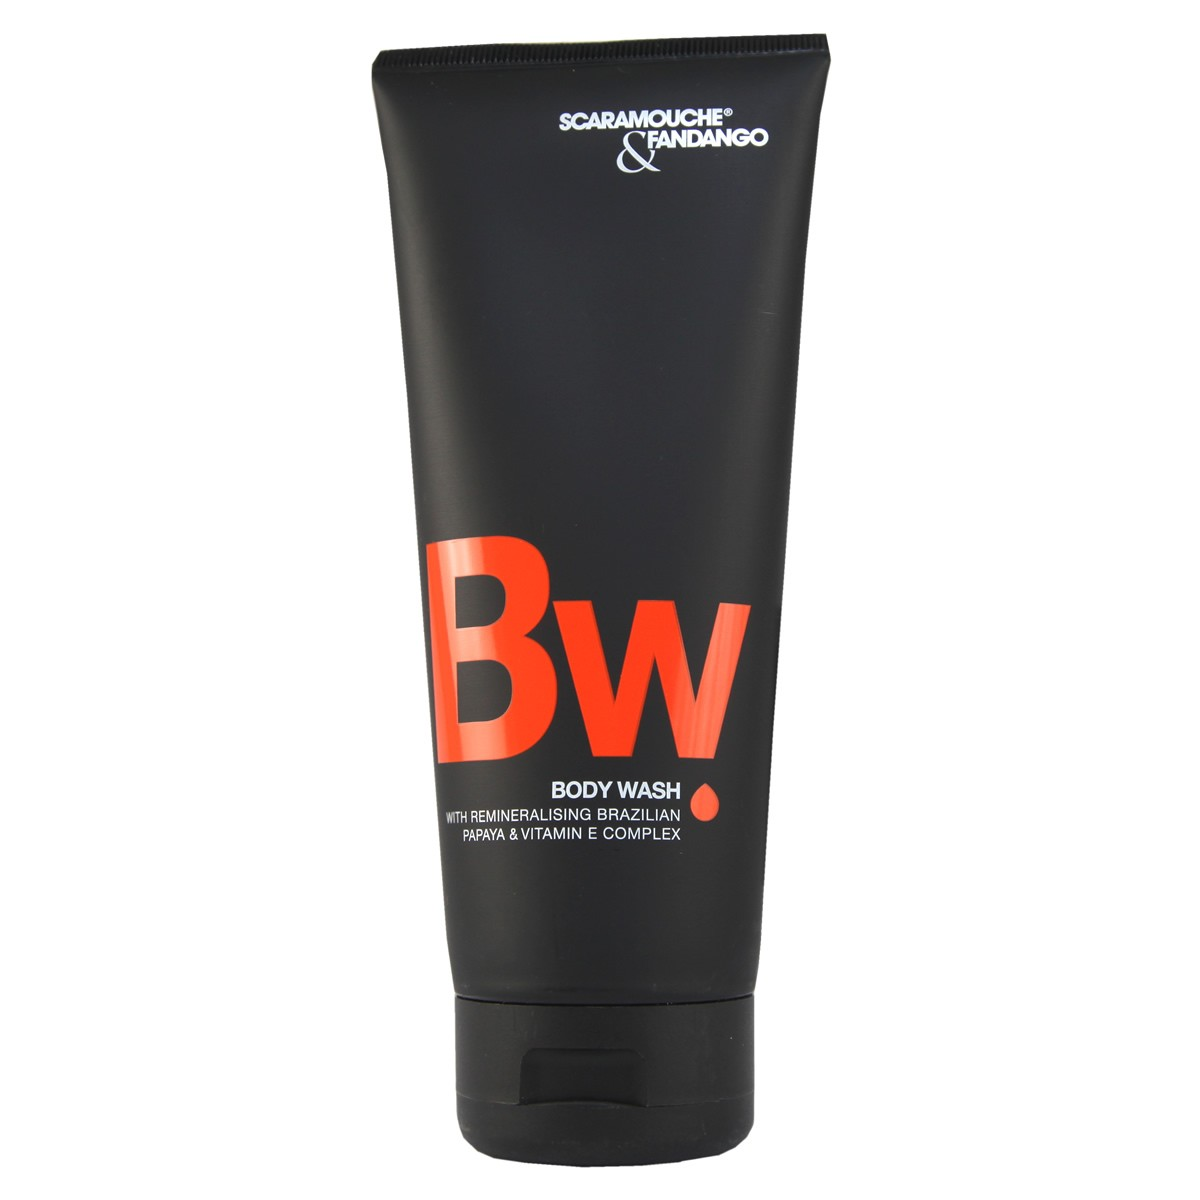 Scaramouche & Fandango Body Wash with Brazilian Papaya & Vitamin E Complex